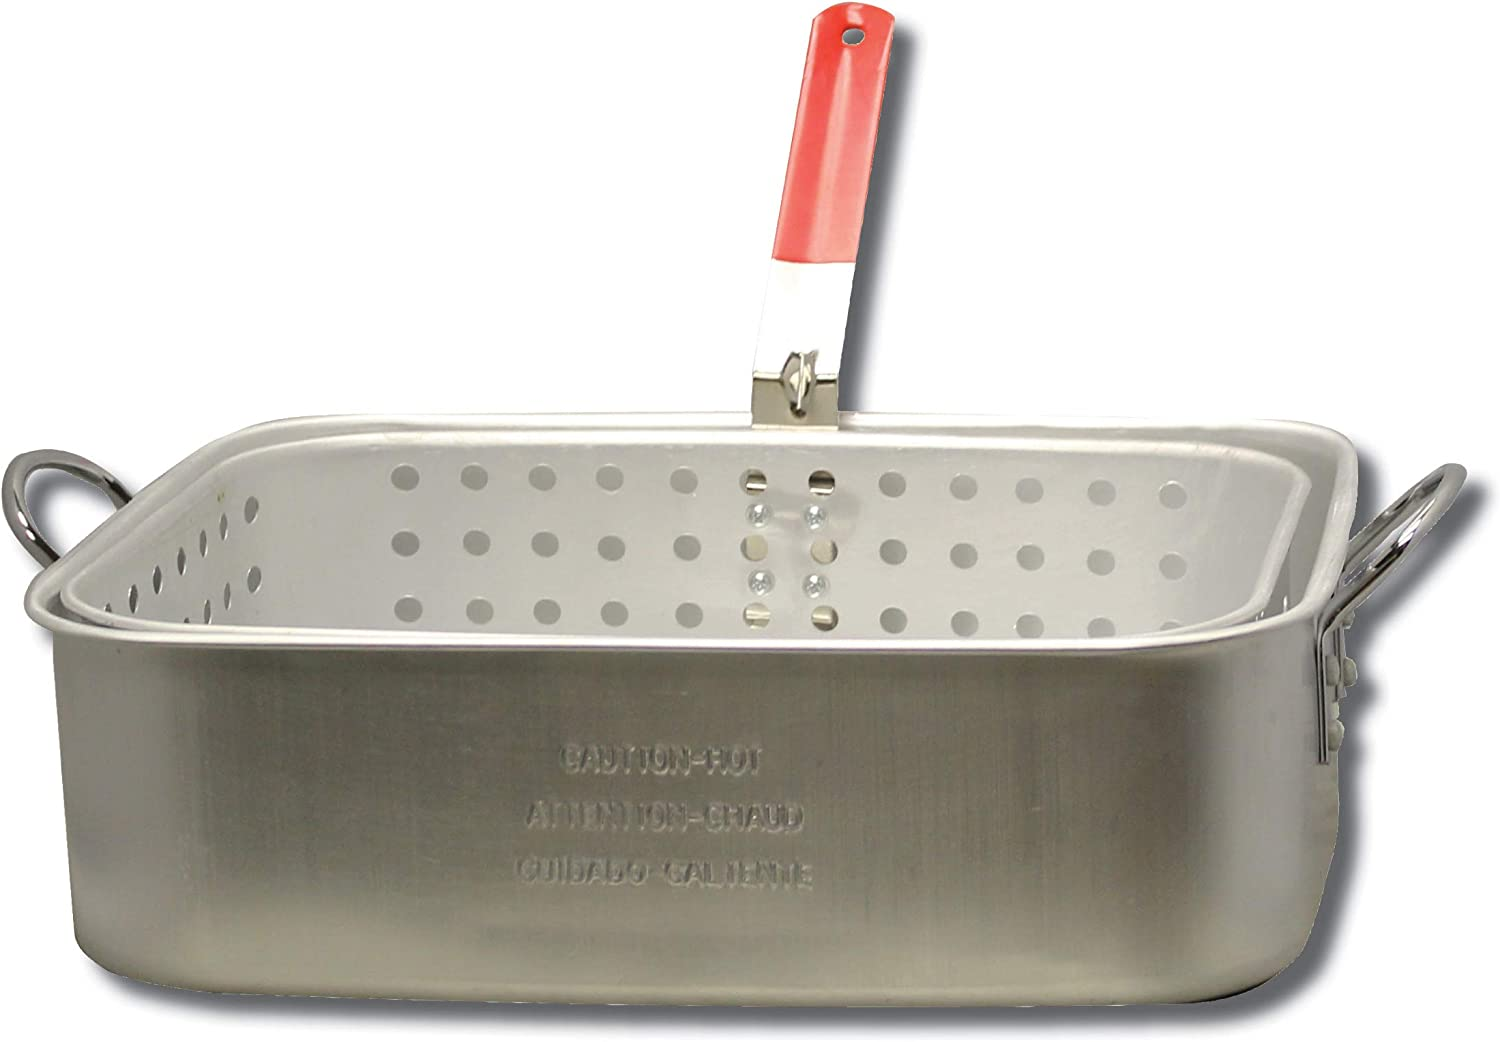 King Kooker KK6 15-Quart Aluminum Rectangular Fry Pan and Basket